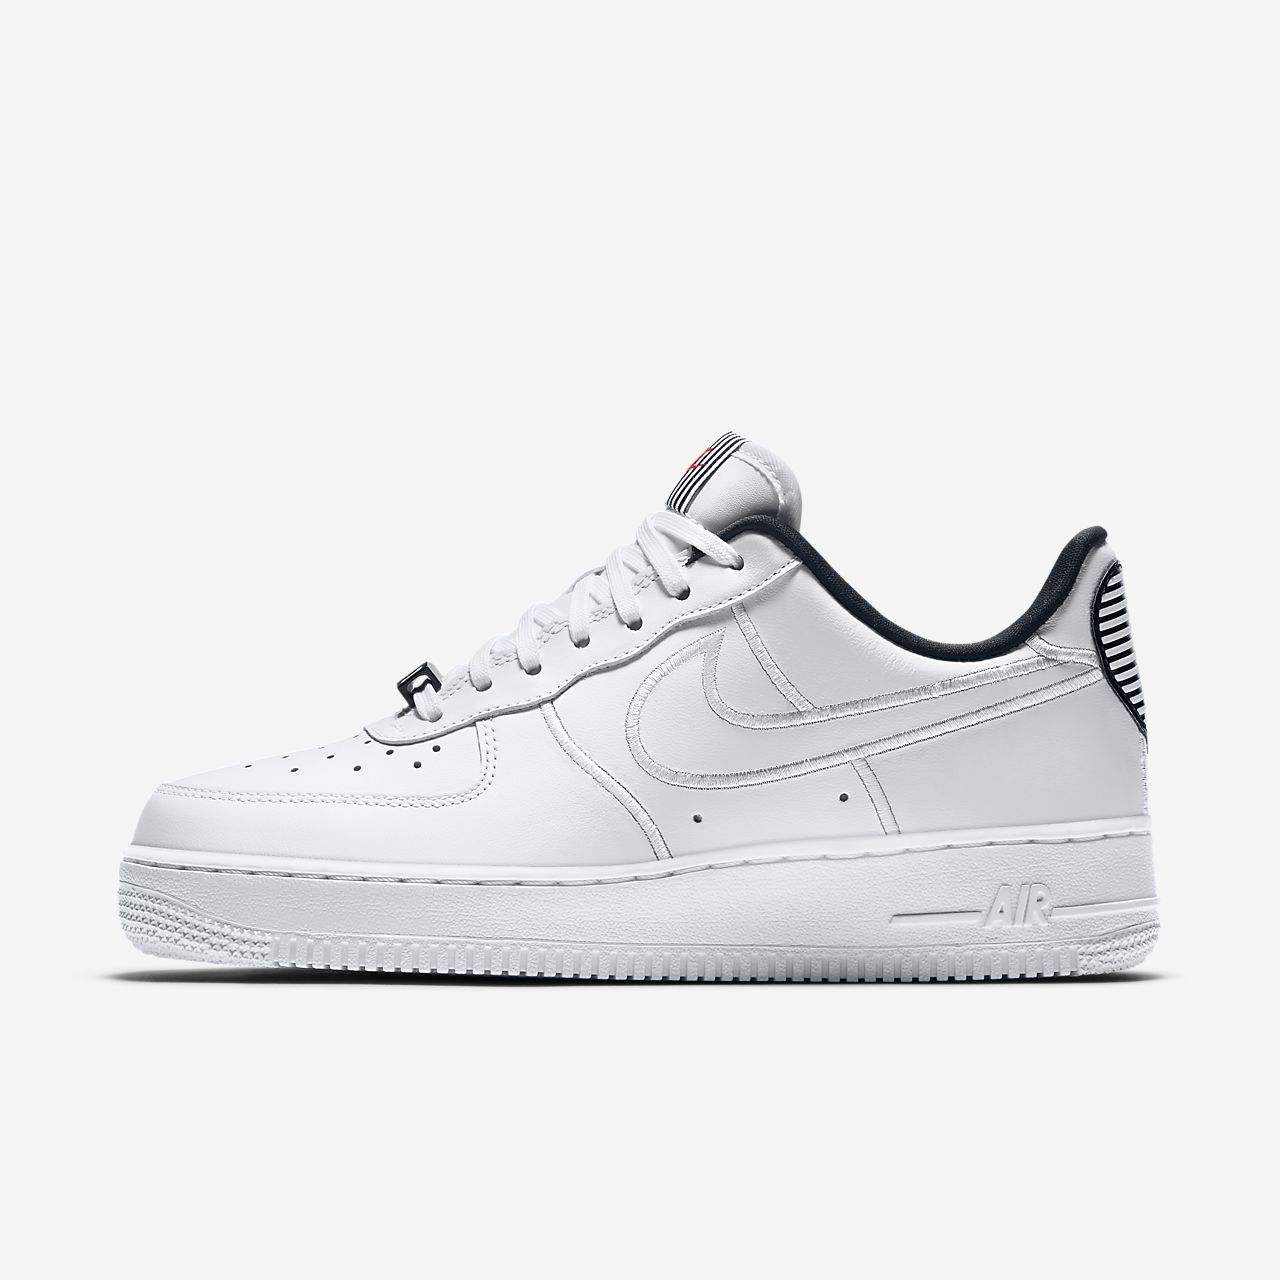 Nike Air Force 1 '07 SE LX 女子运动鞋